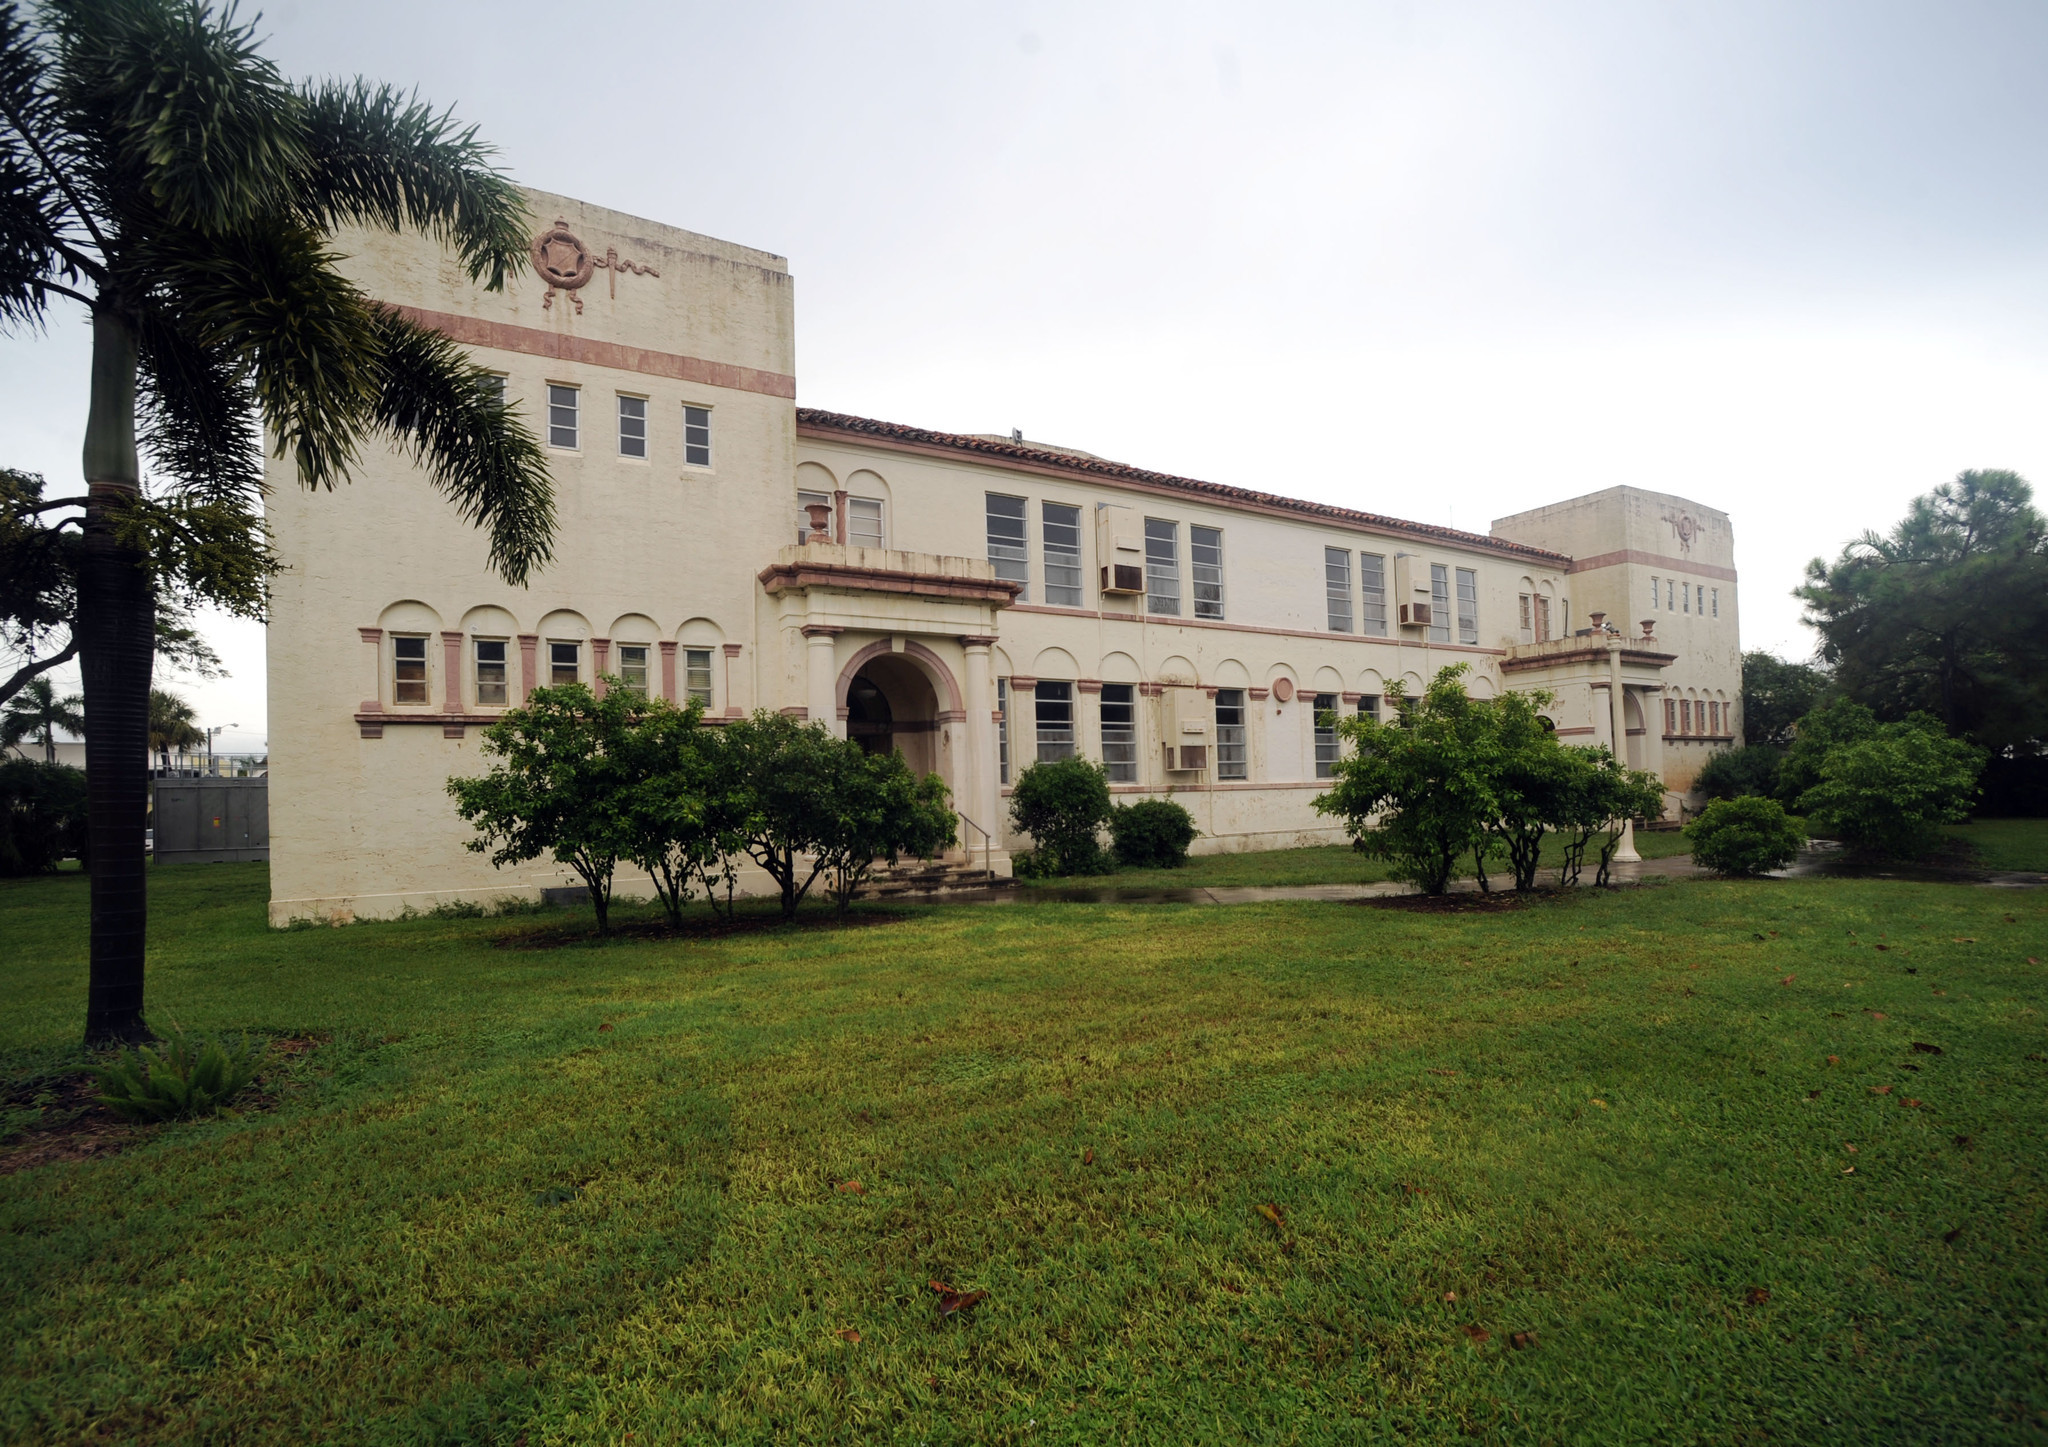 City Of Boynton Beach Hall